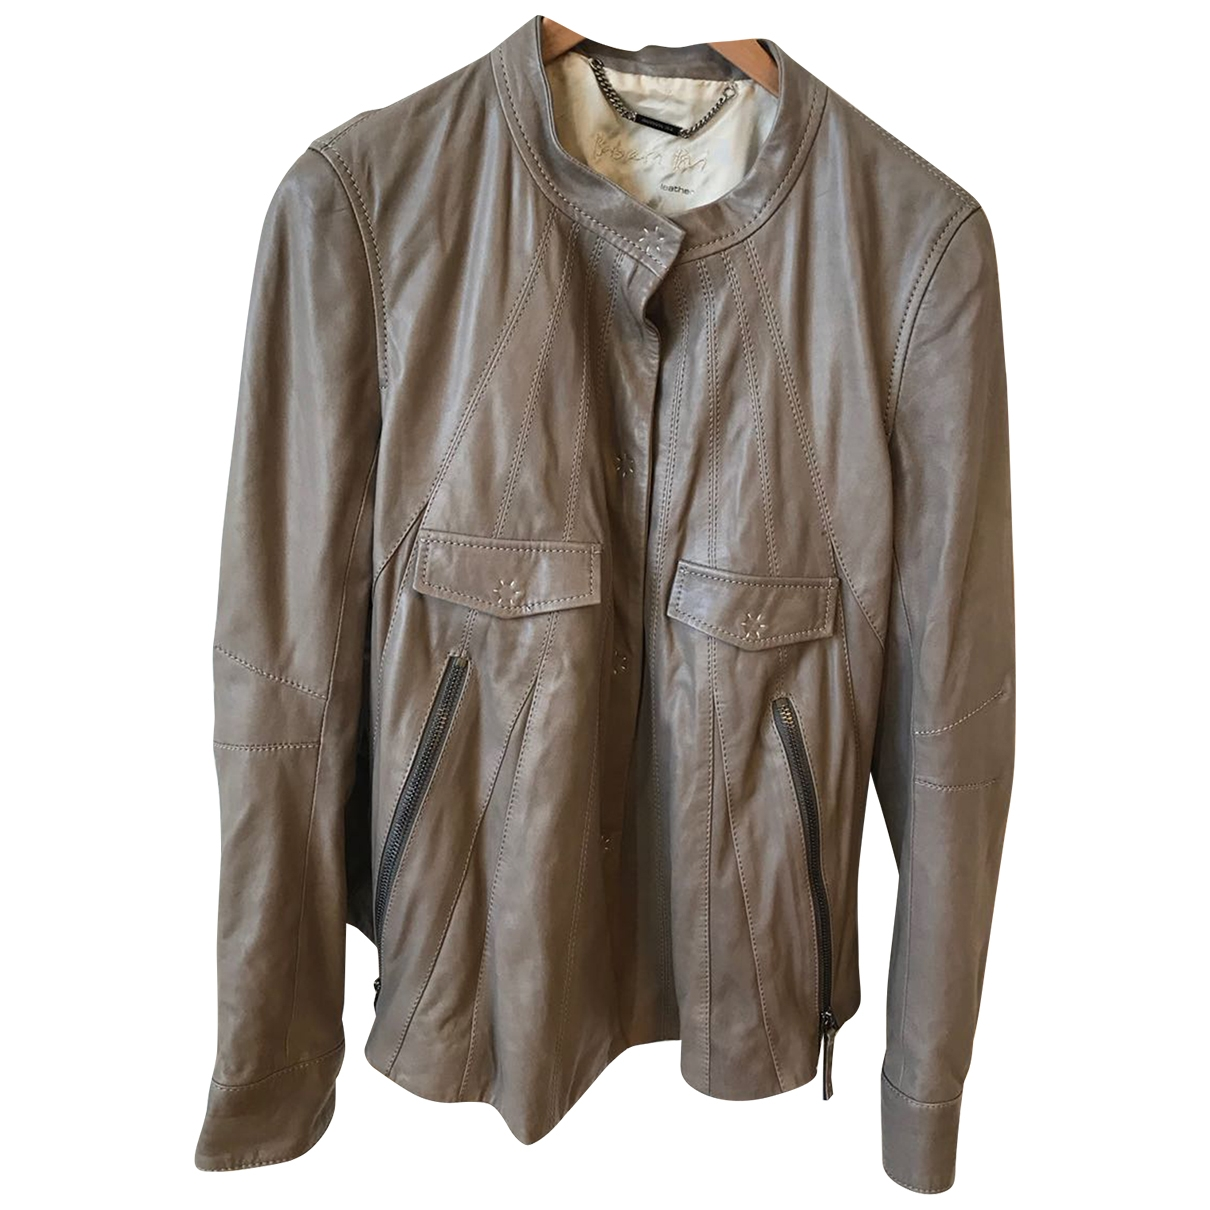 Barbara Bui \N Beige Leather jacket for Women 40 IT